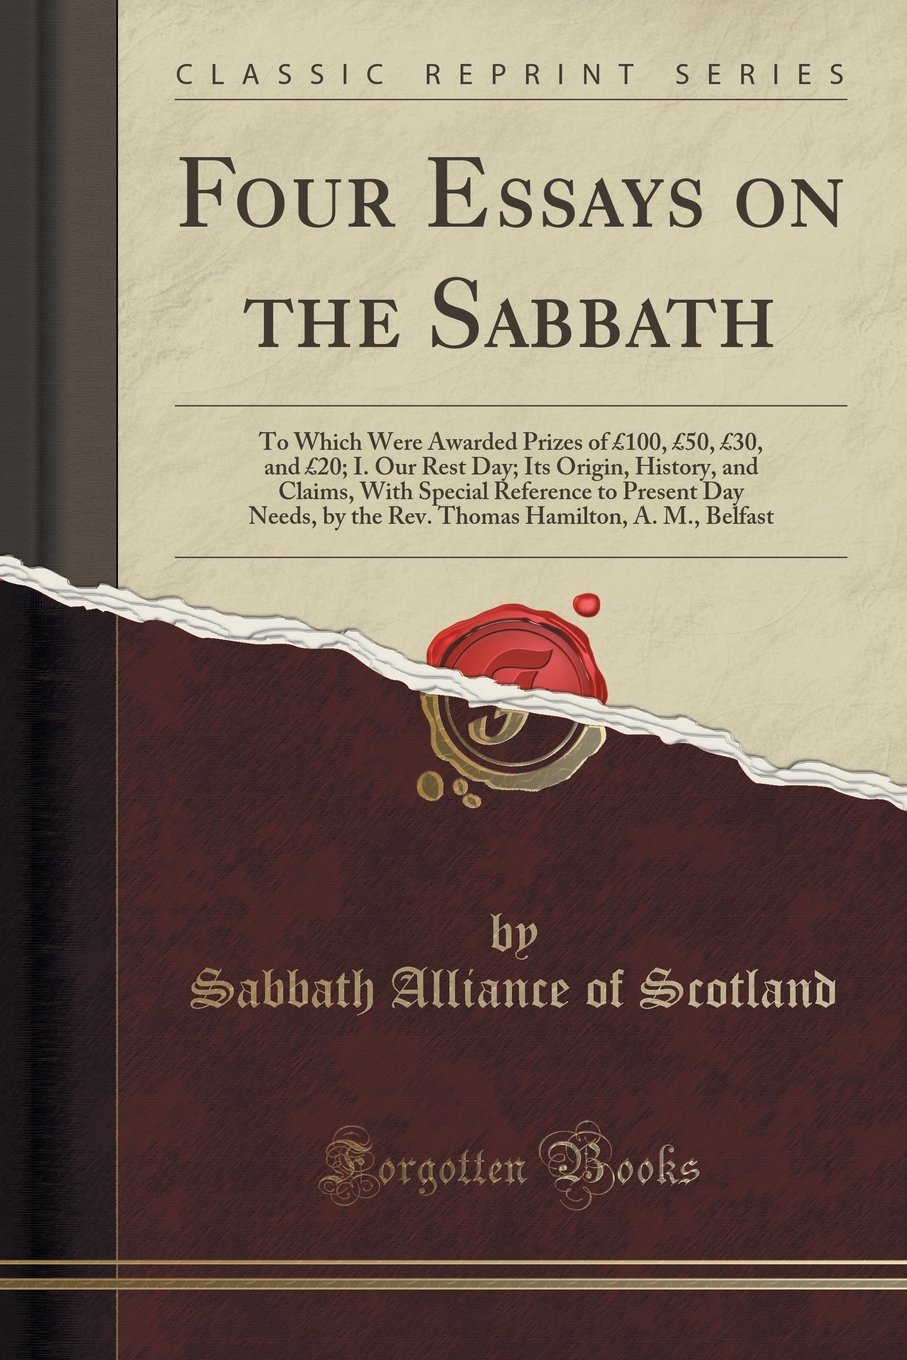 Download Four Essays on the Sabbath: To Which Were Awarded Prizes of £100, £50, £30, and £20; I. Our Rest Day; Its Origin, History, and Claims, With Special ... Hamilton, A. M., Belfast (Classic Reprint) PDF